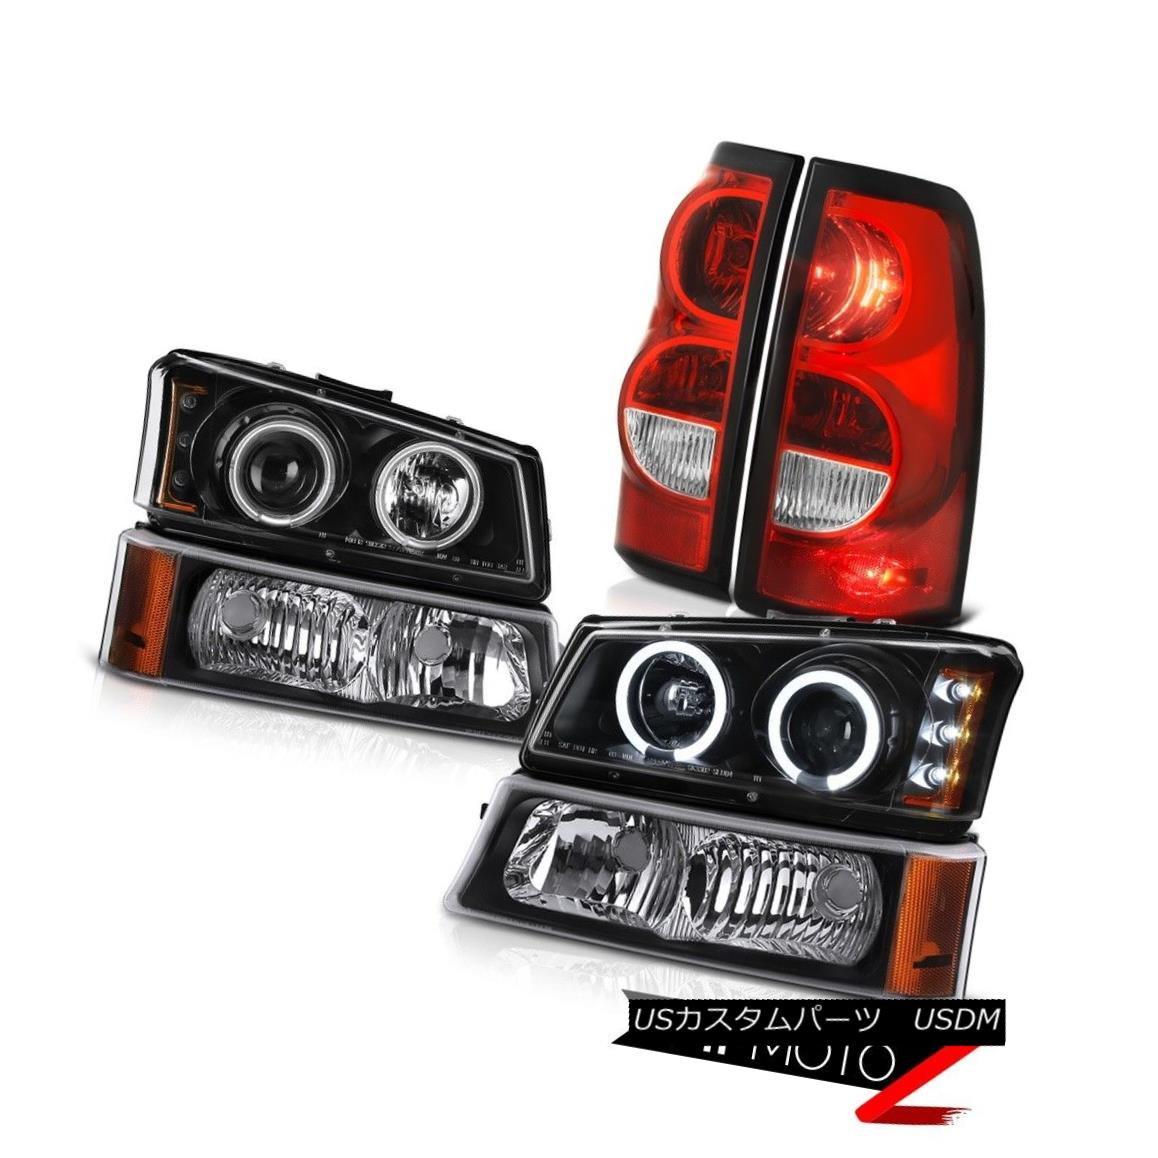 テールライト 03-06 Chevy Silverado Rear Brake Lights Signal Lamp Headlamps Factory Style LED 03-06 Chevy Silveradoリアブレーキライト信号ランプヘッドランプ工場スタイルLED